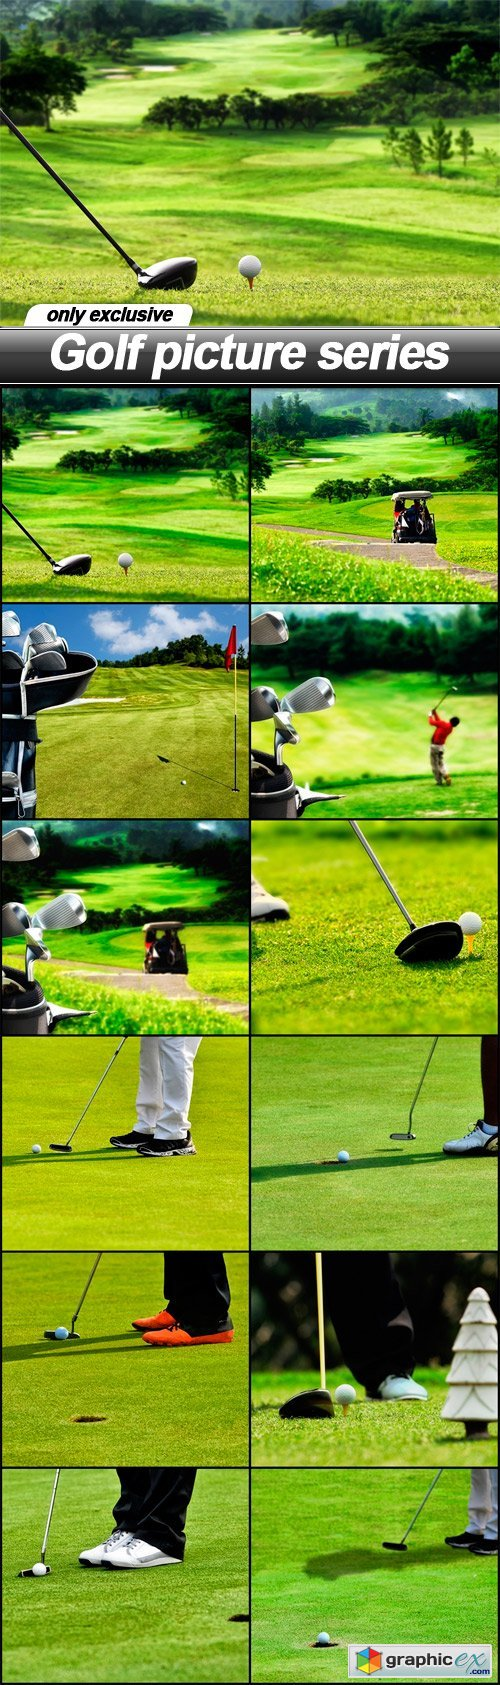 Golf picture series - 12 UHQ JPEG